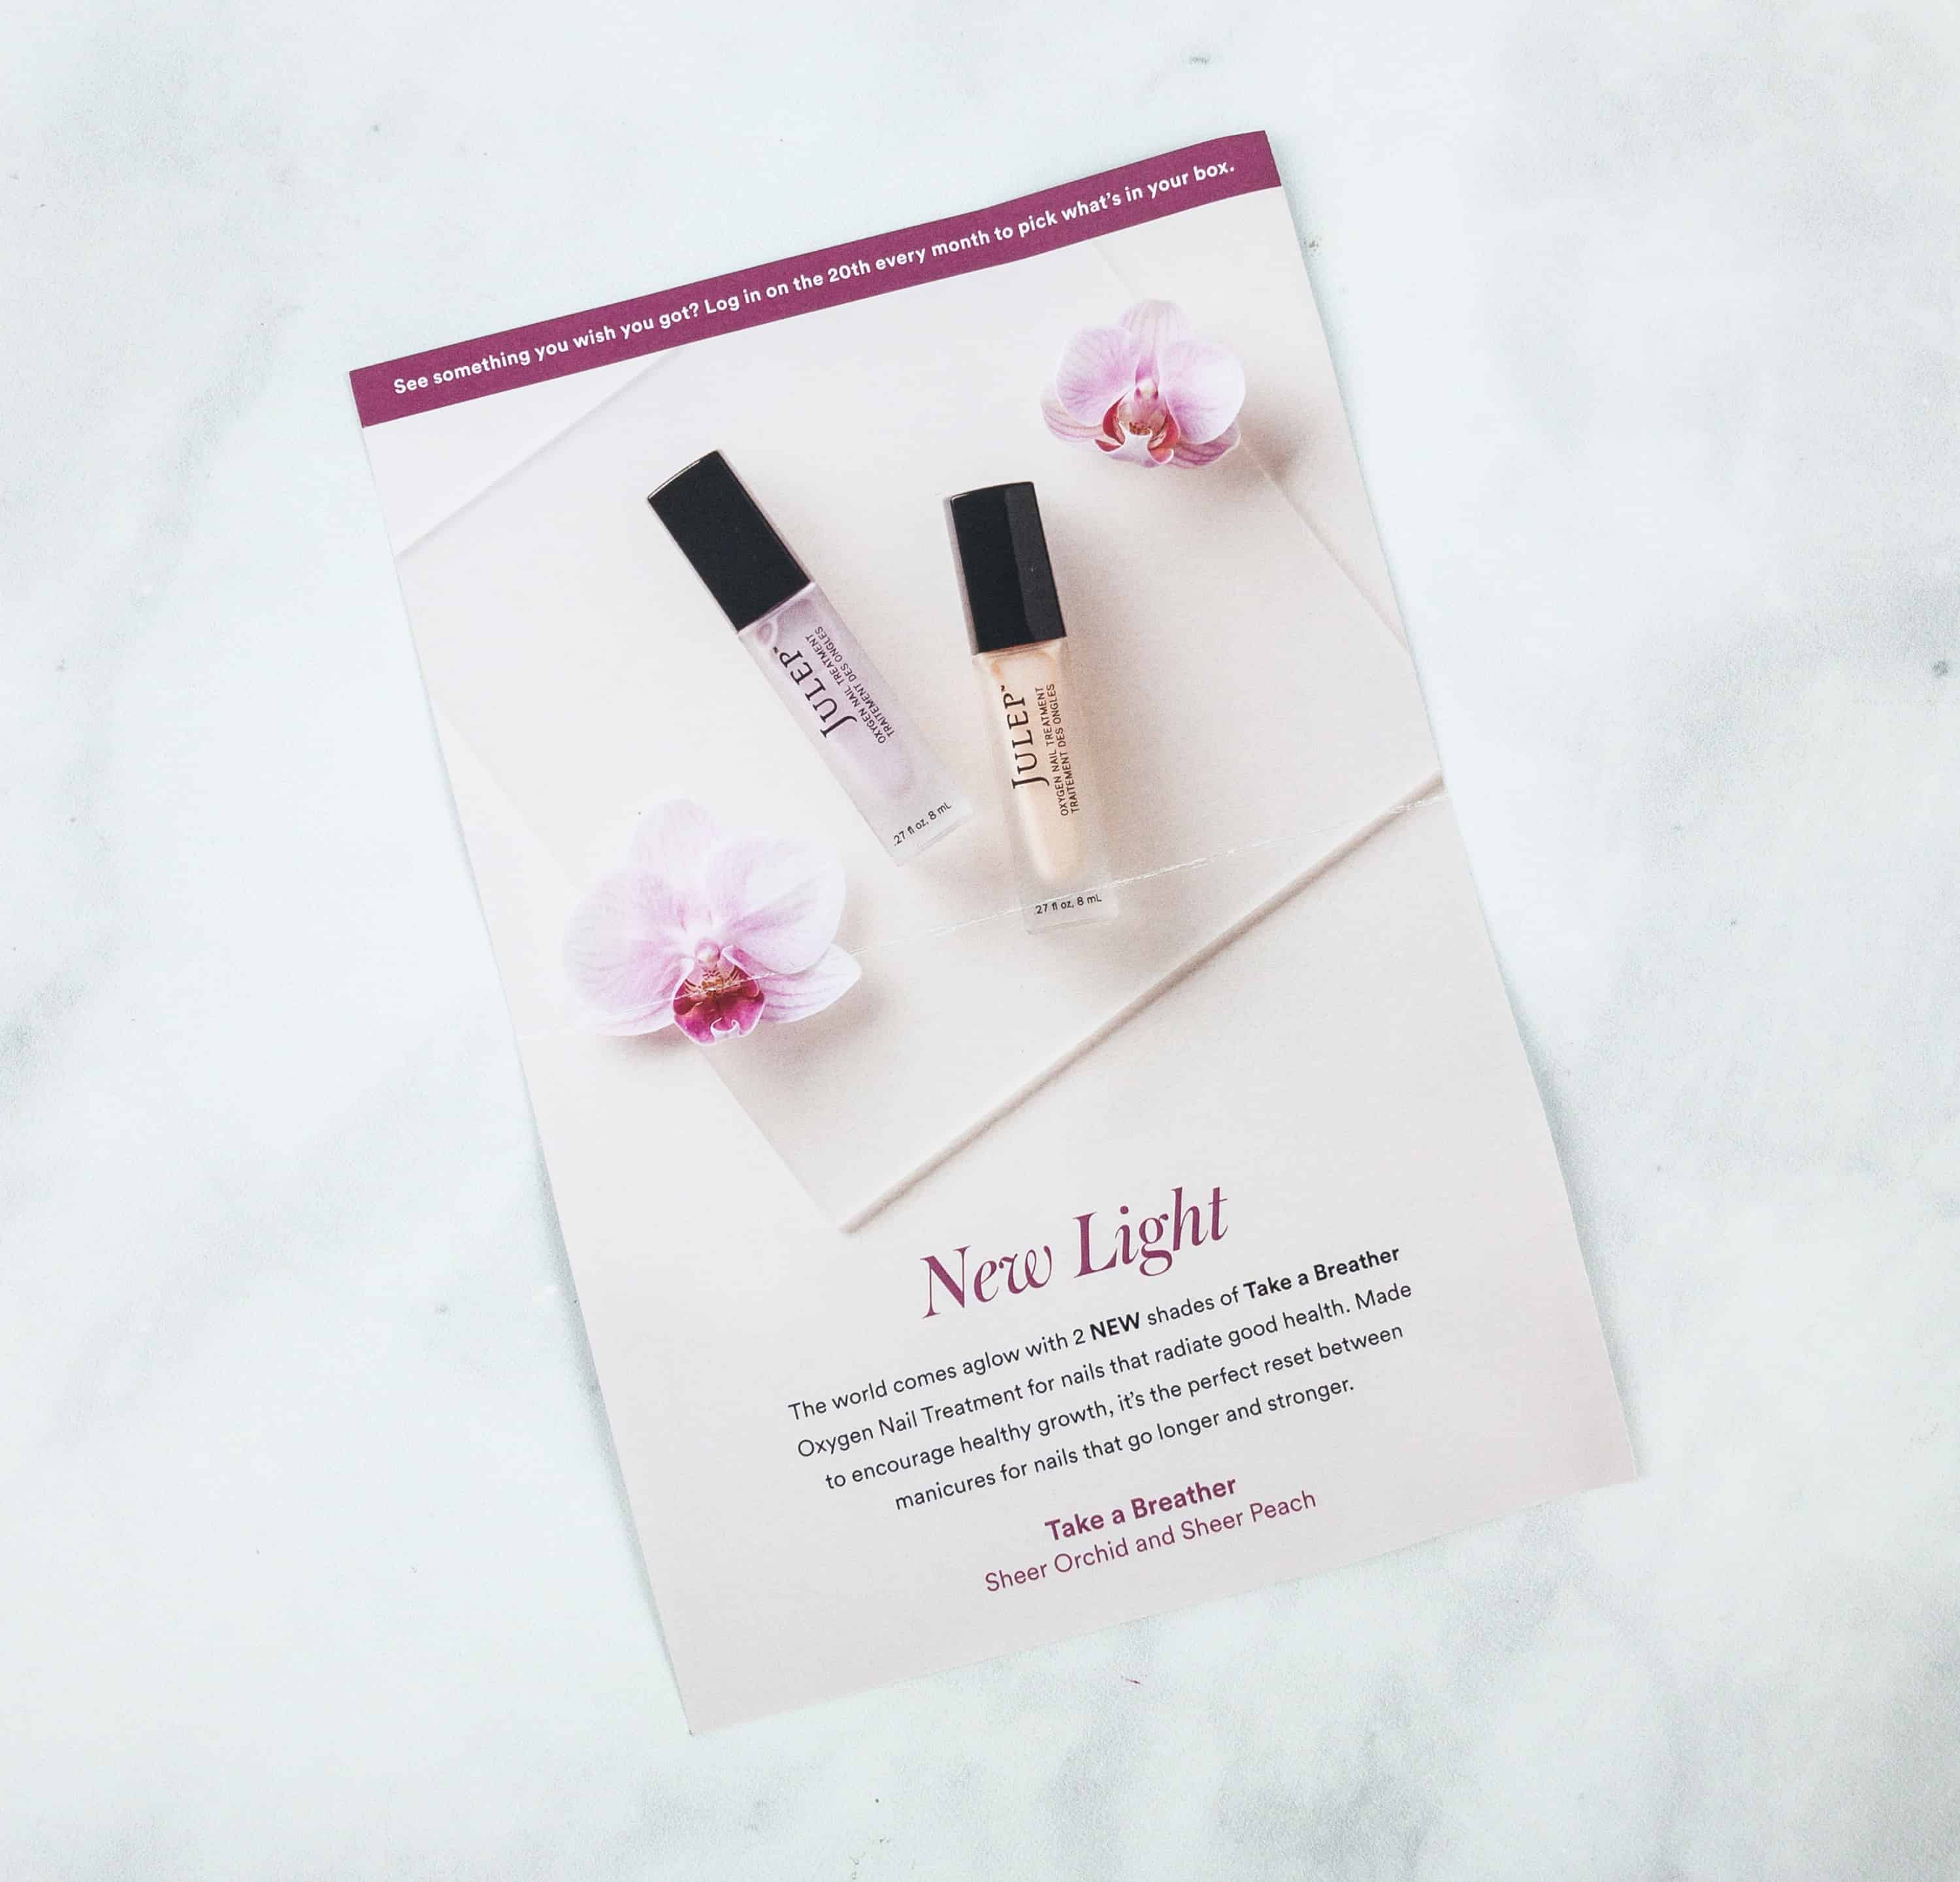 There S An Info Card With Image Of The Cult Favorite 2 New Shades Take A Breather Oxygen Nail Treatment